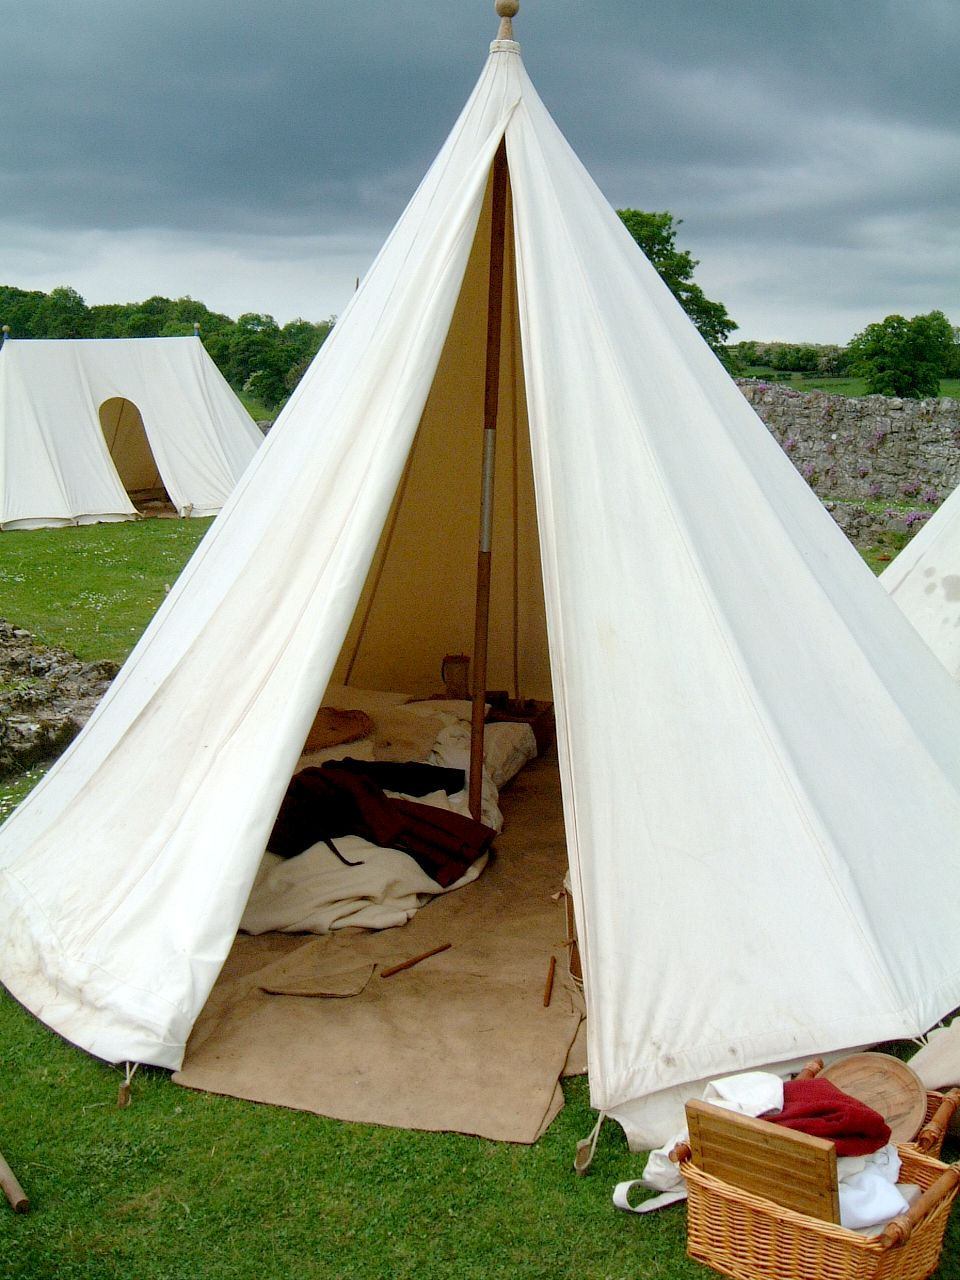 A shot of the interior of a taller tent (7 or 7 1/2 ft tall) showing a two-person bed on the left. & 15th century tent